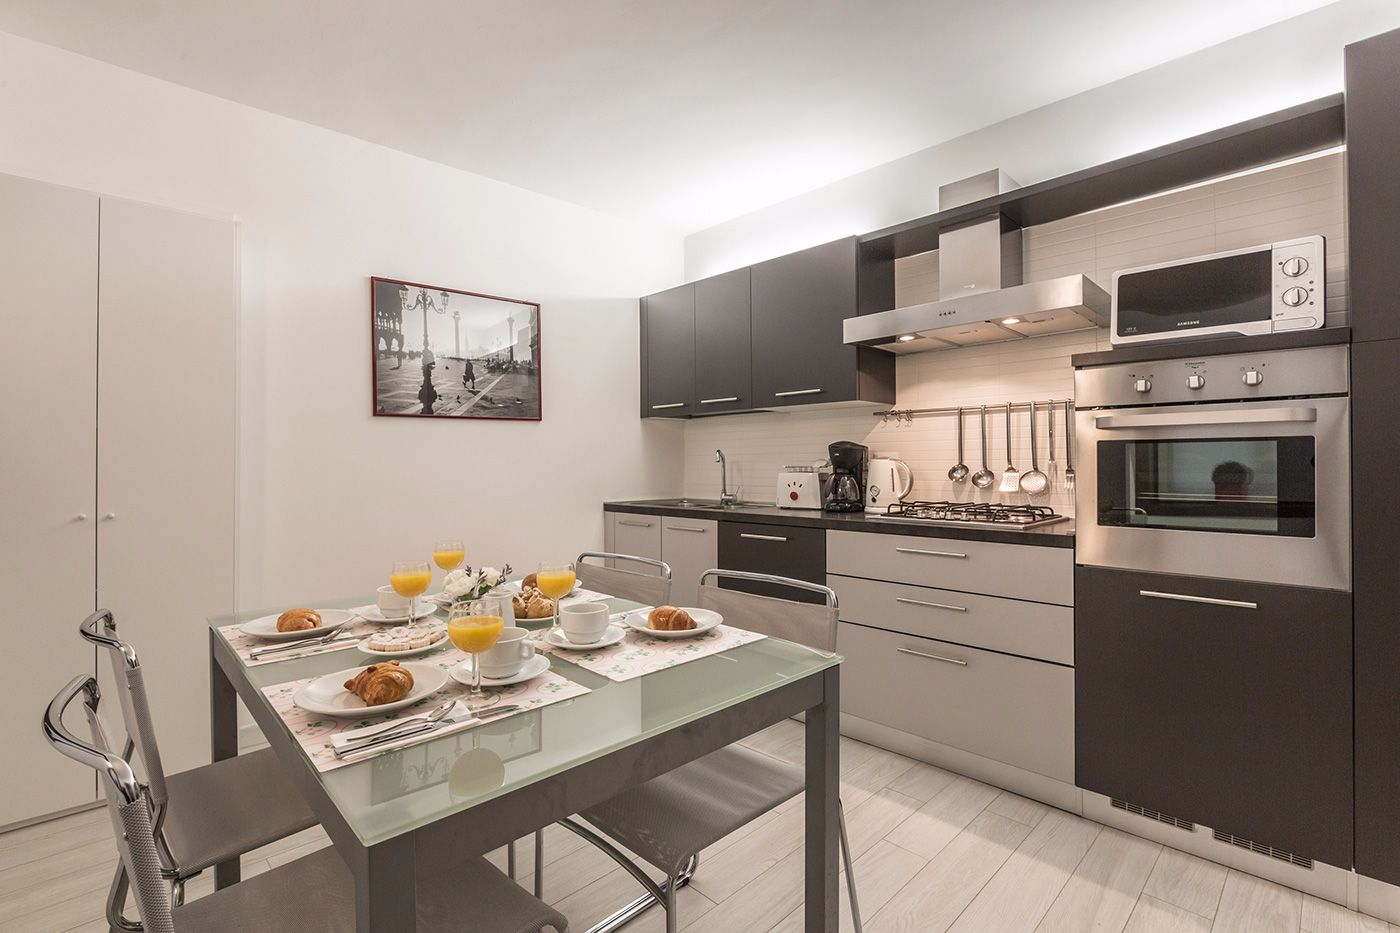 spacious and well equipped kitchen, perfect for family dining...